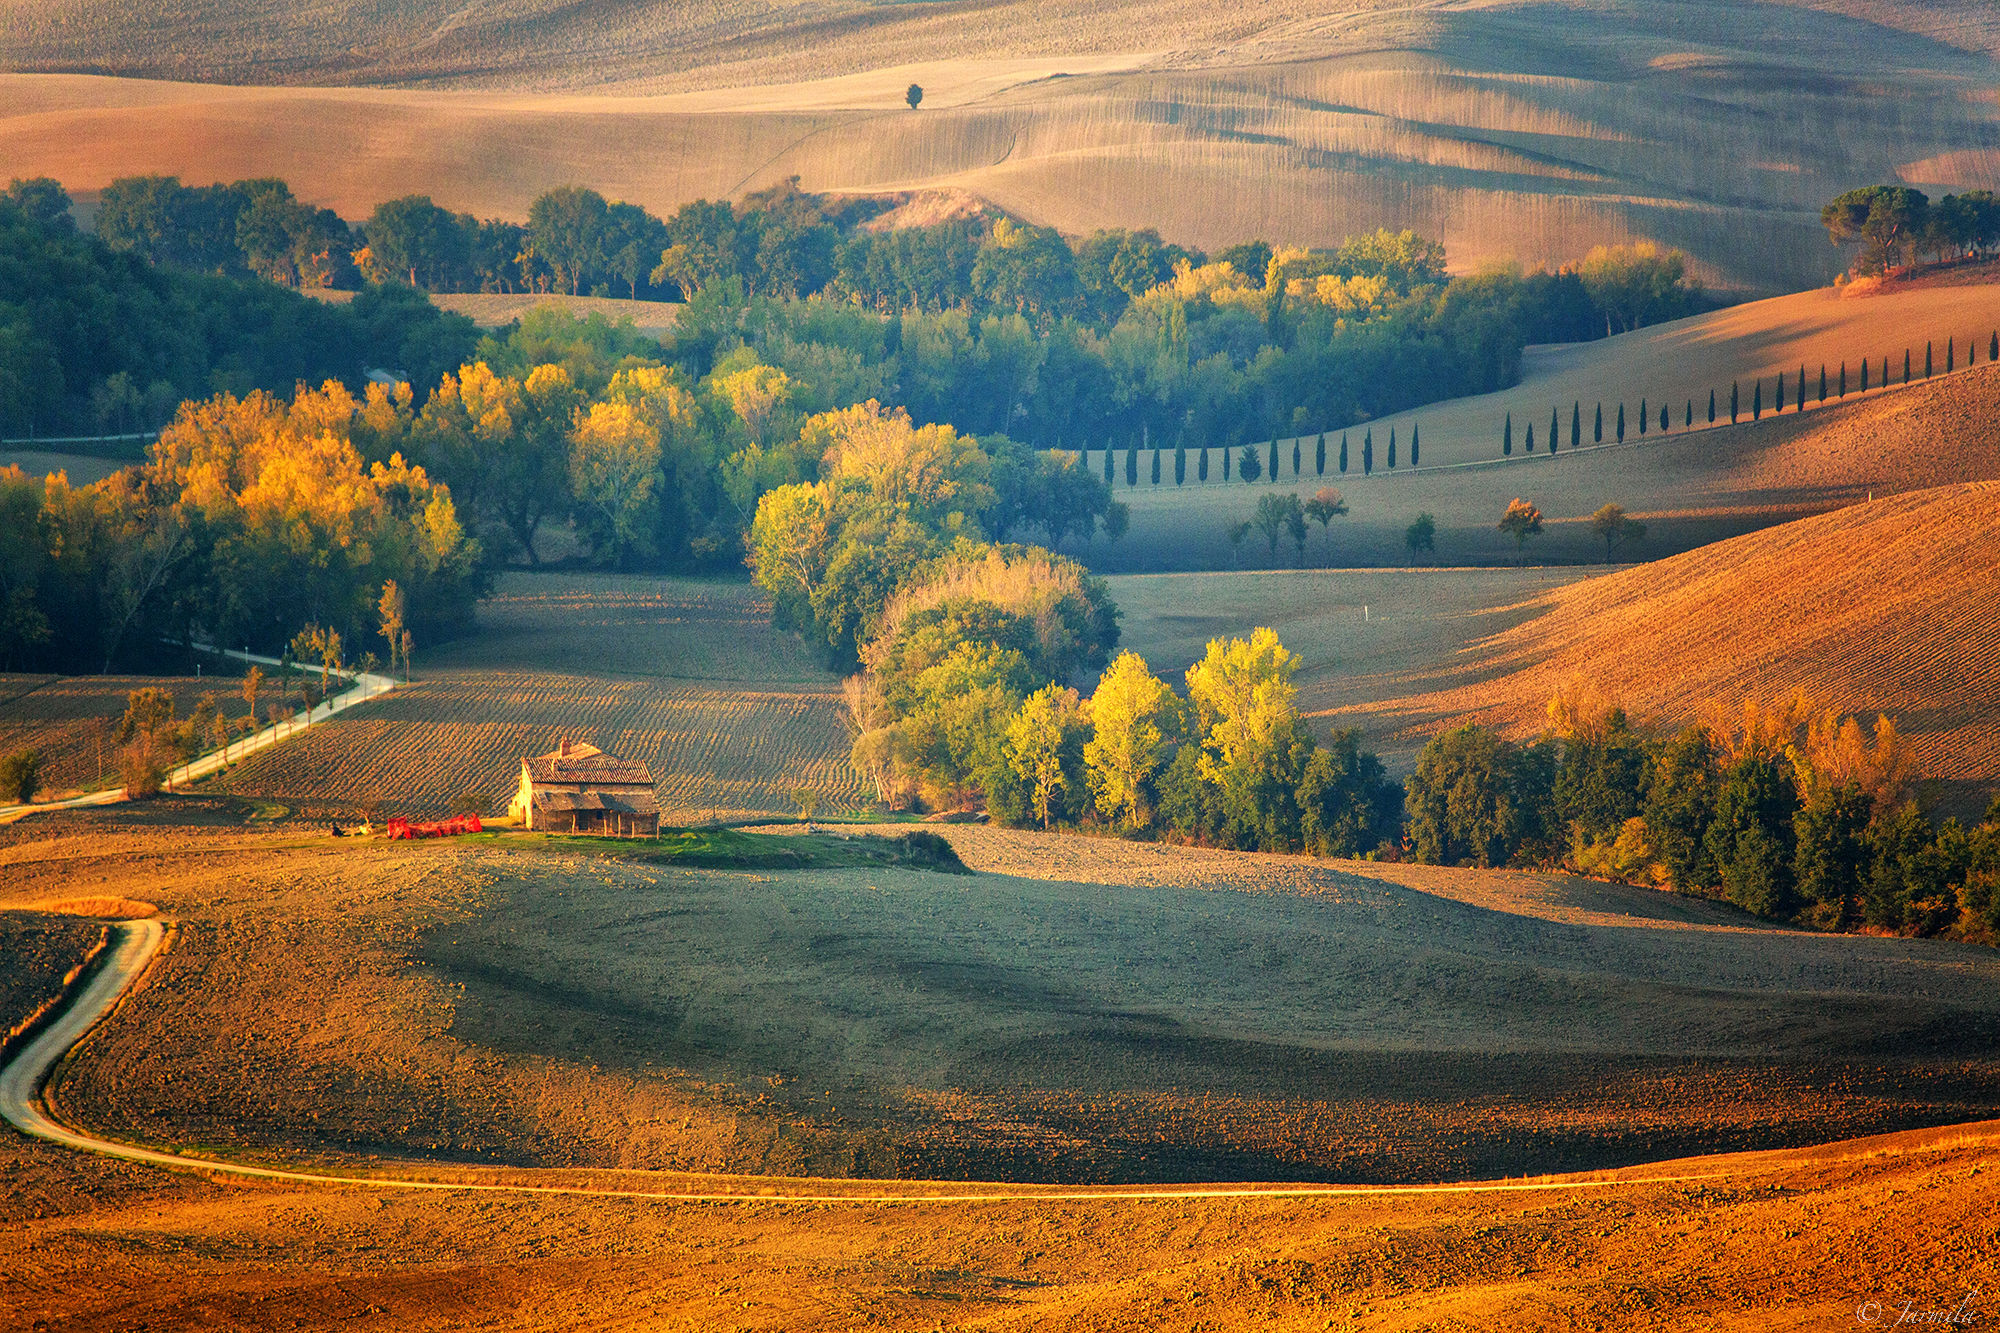 Enchantment of the Val d'orcia between silence and nature...